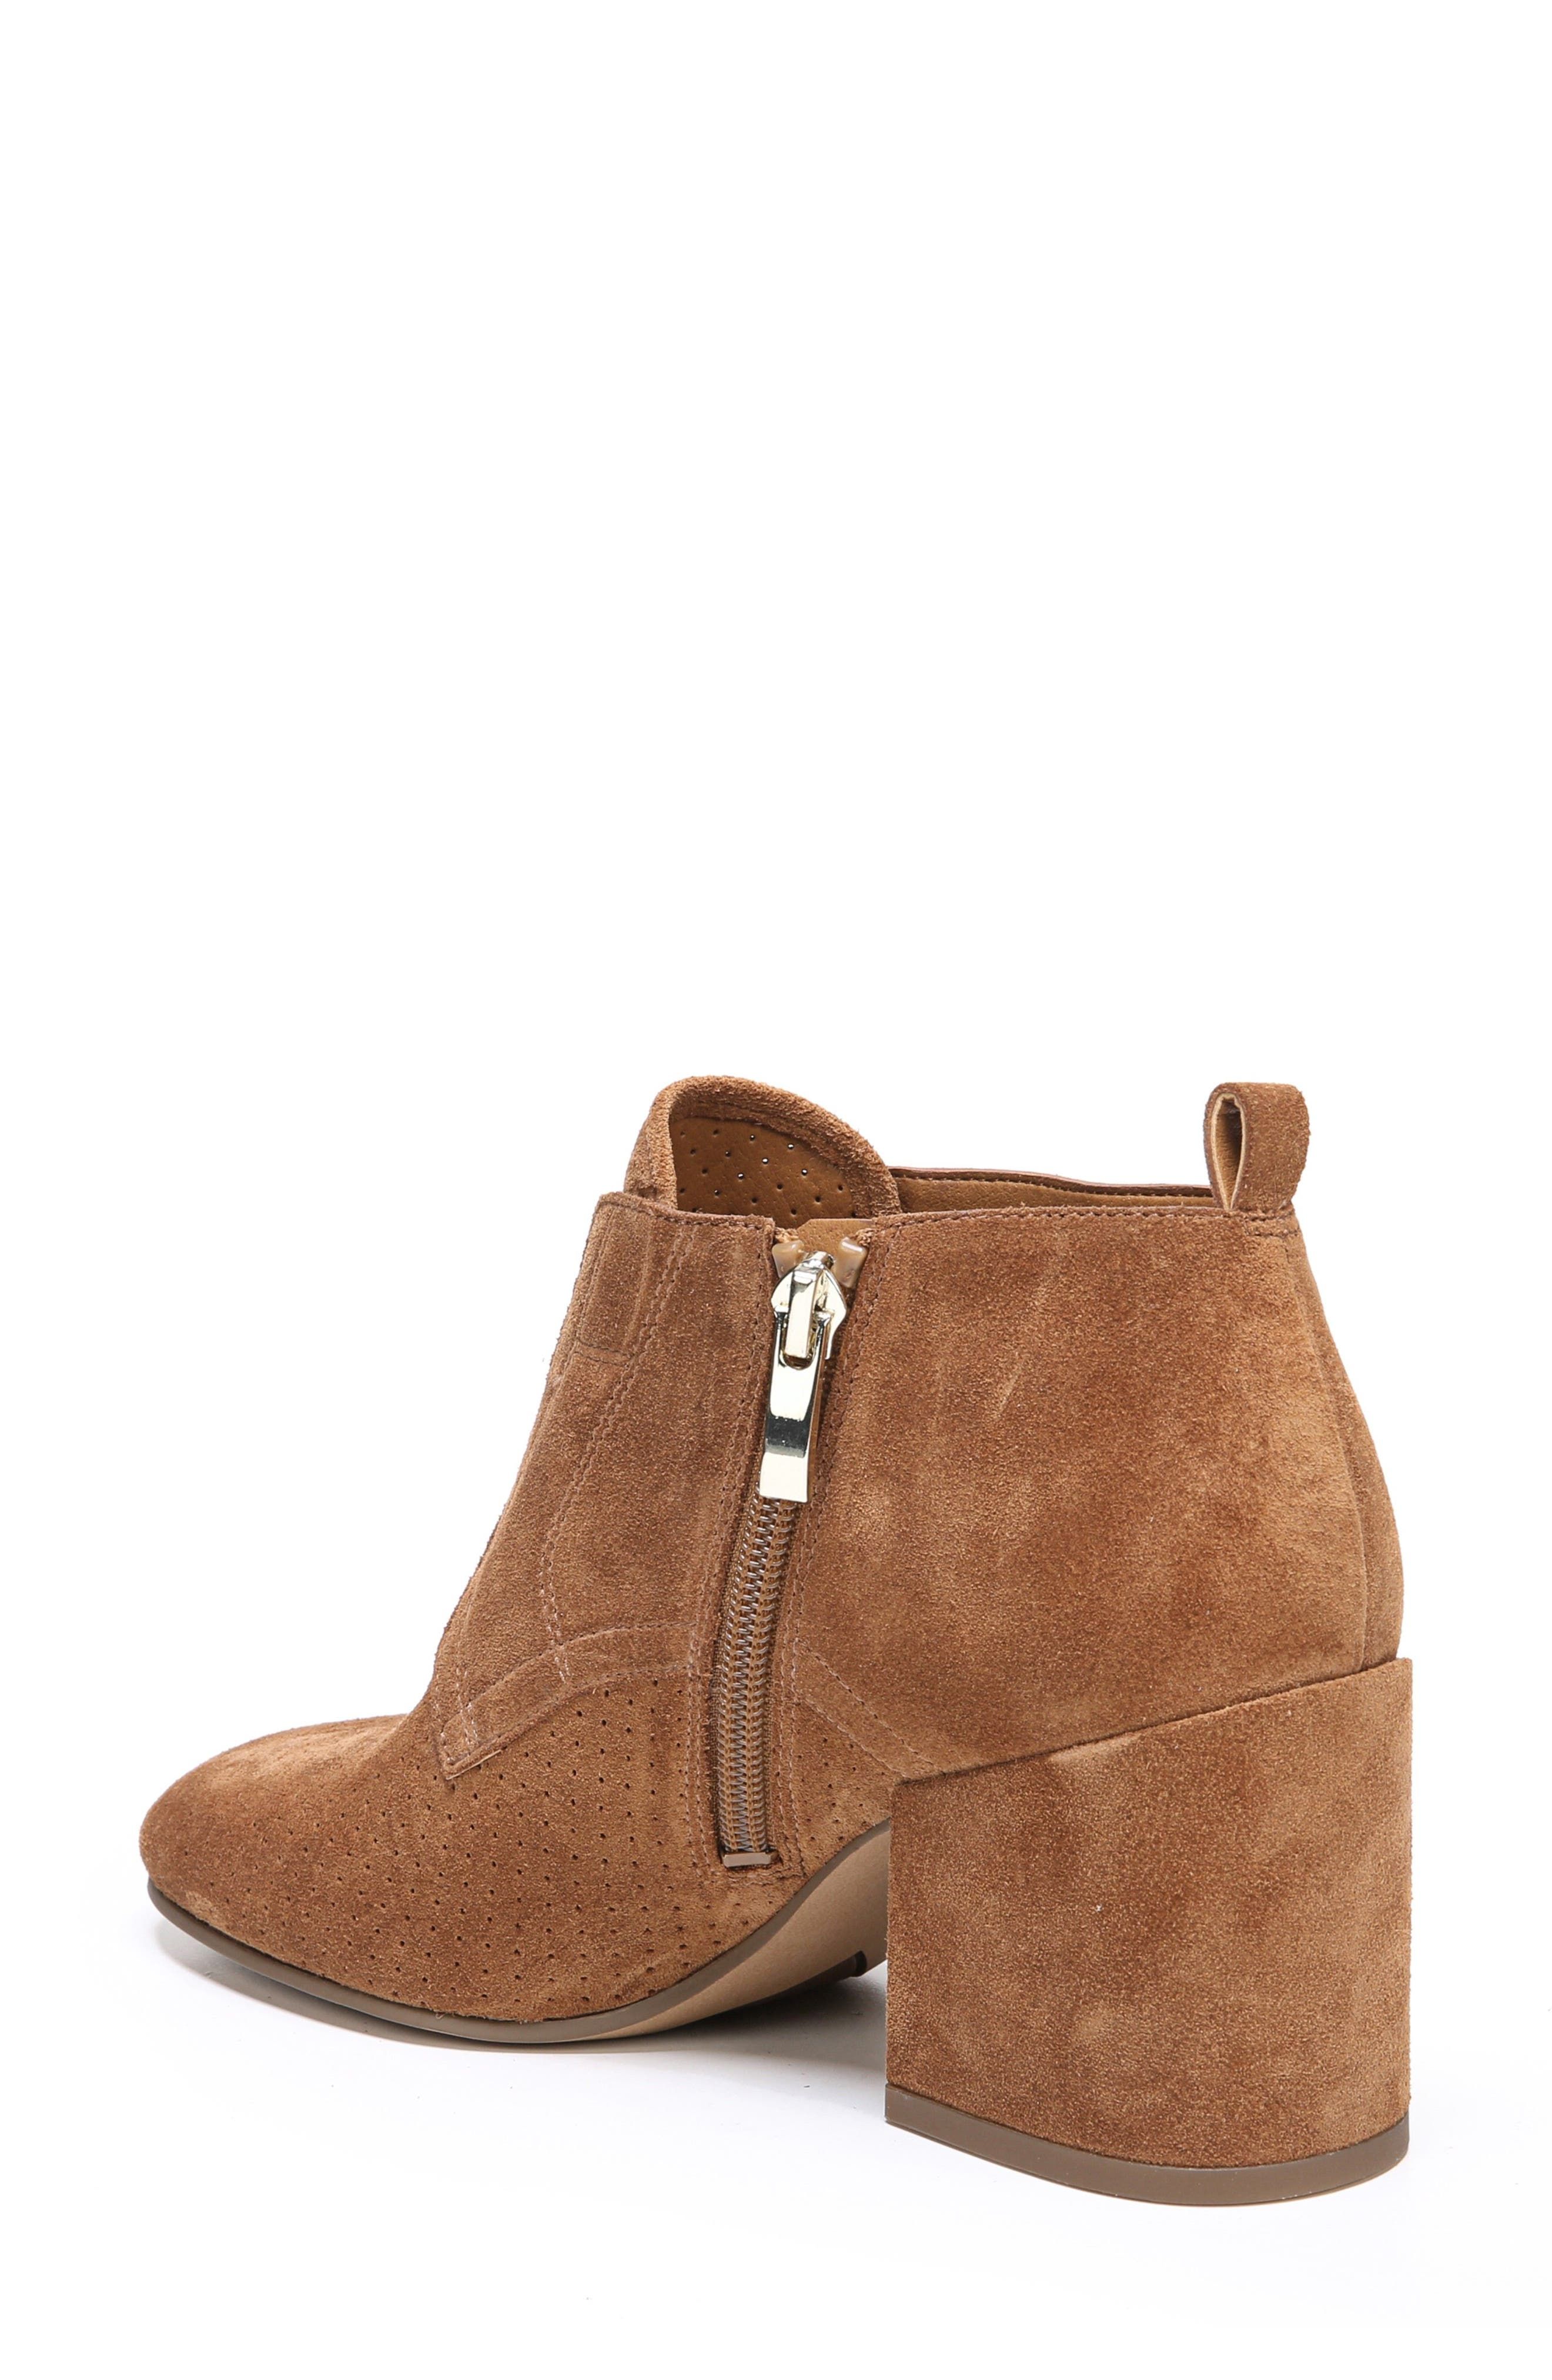 Alfie Bootie,                             Alternate thumbnail 2, color,                             Whiskey Suede